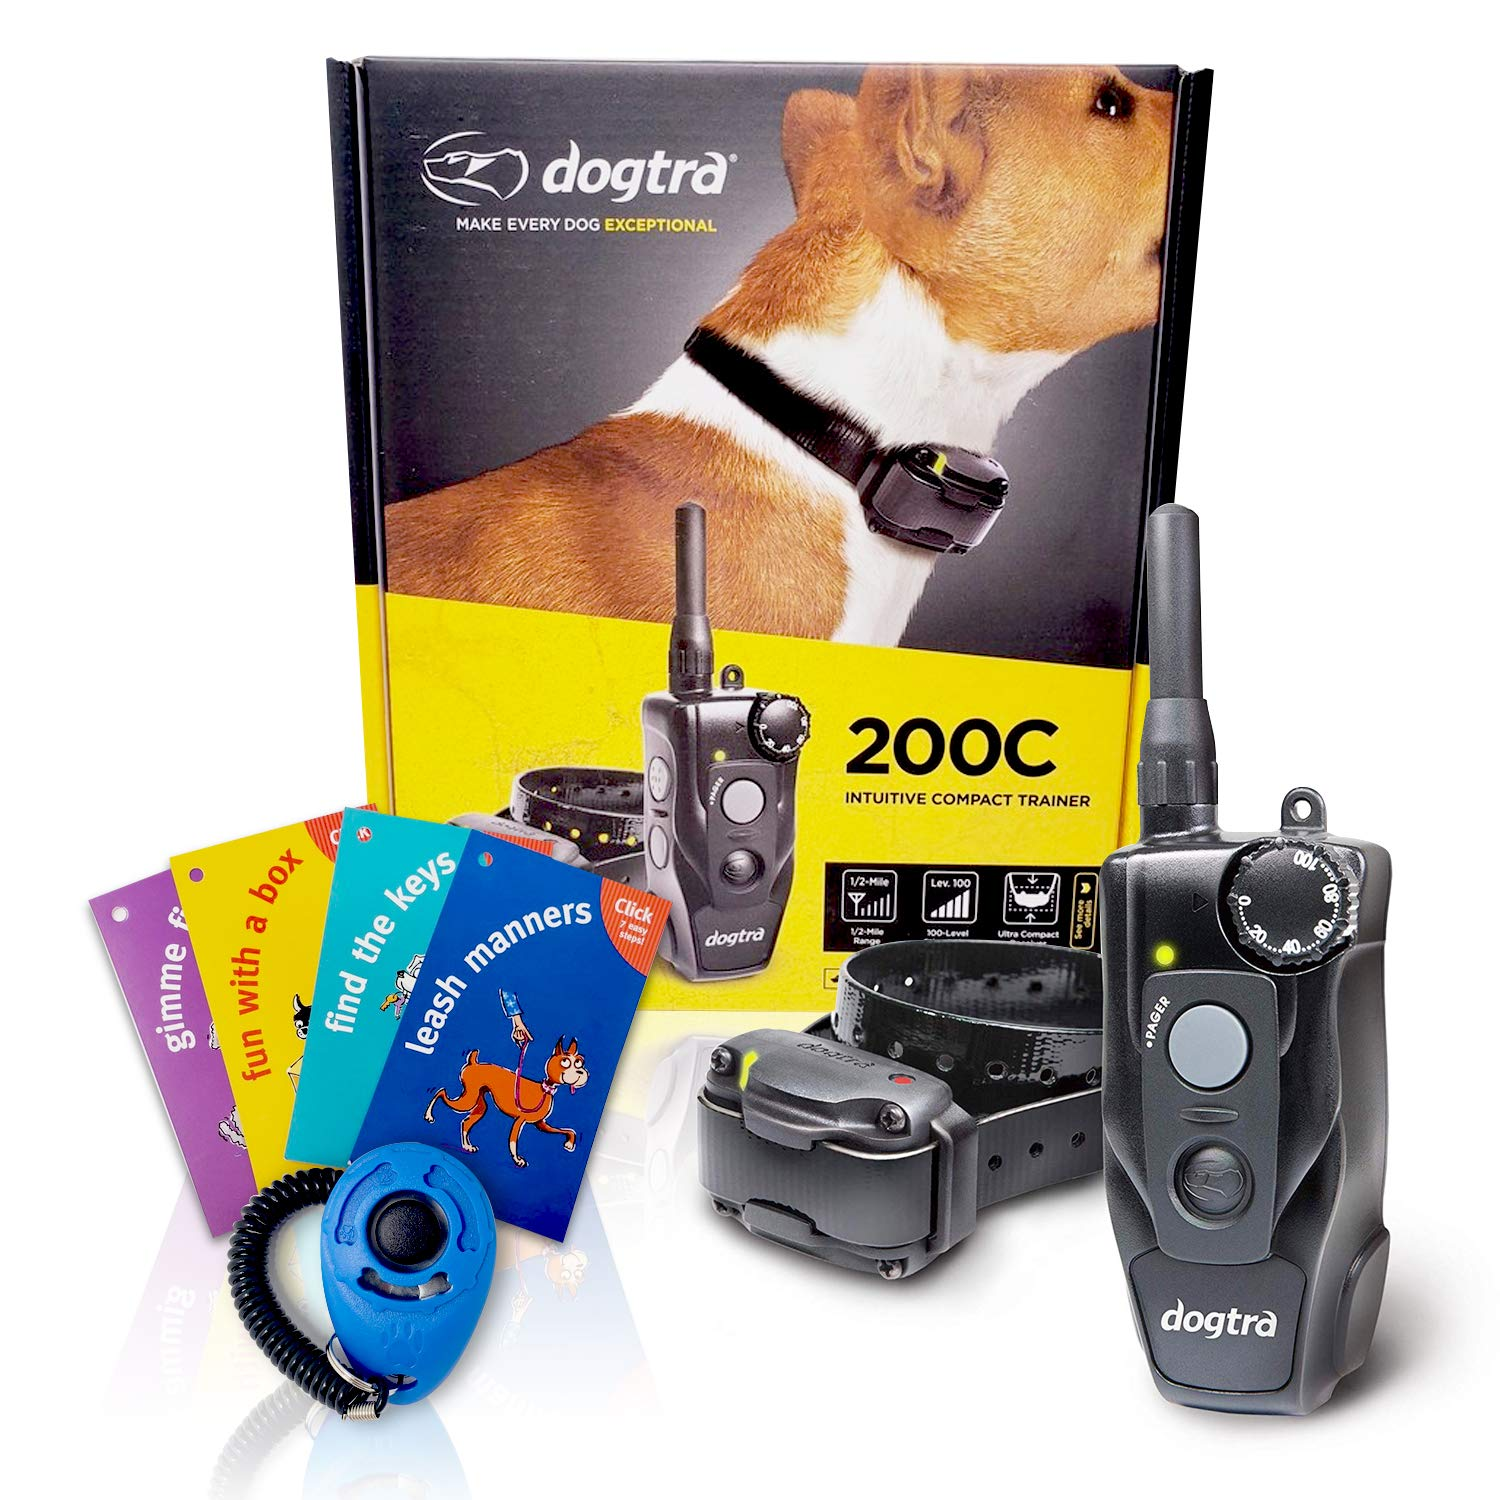 Dogtra 200C Remote Training Collar – 1 2 Mile Range, Rechargeable, Waterproof – Plus 1 iClick Training Card, Jestik Click Trainer – Value Bundle